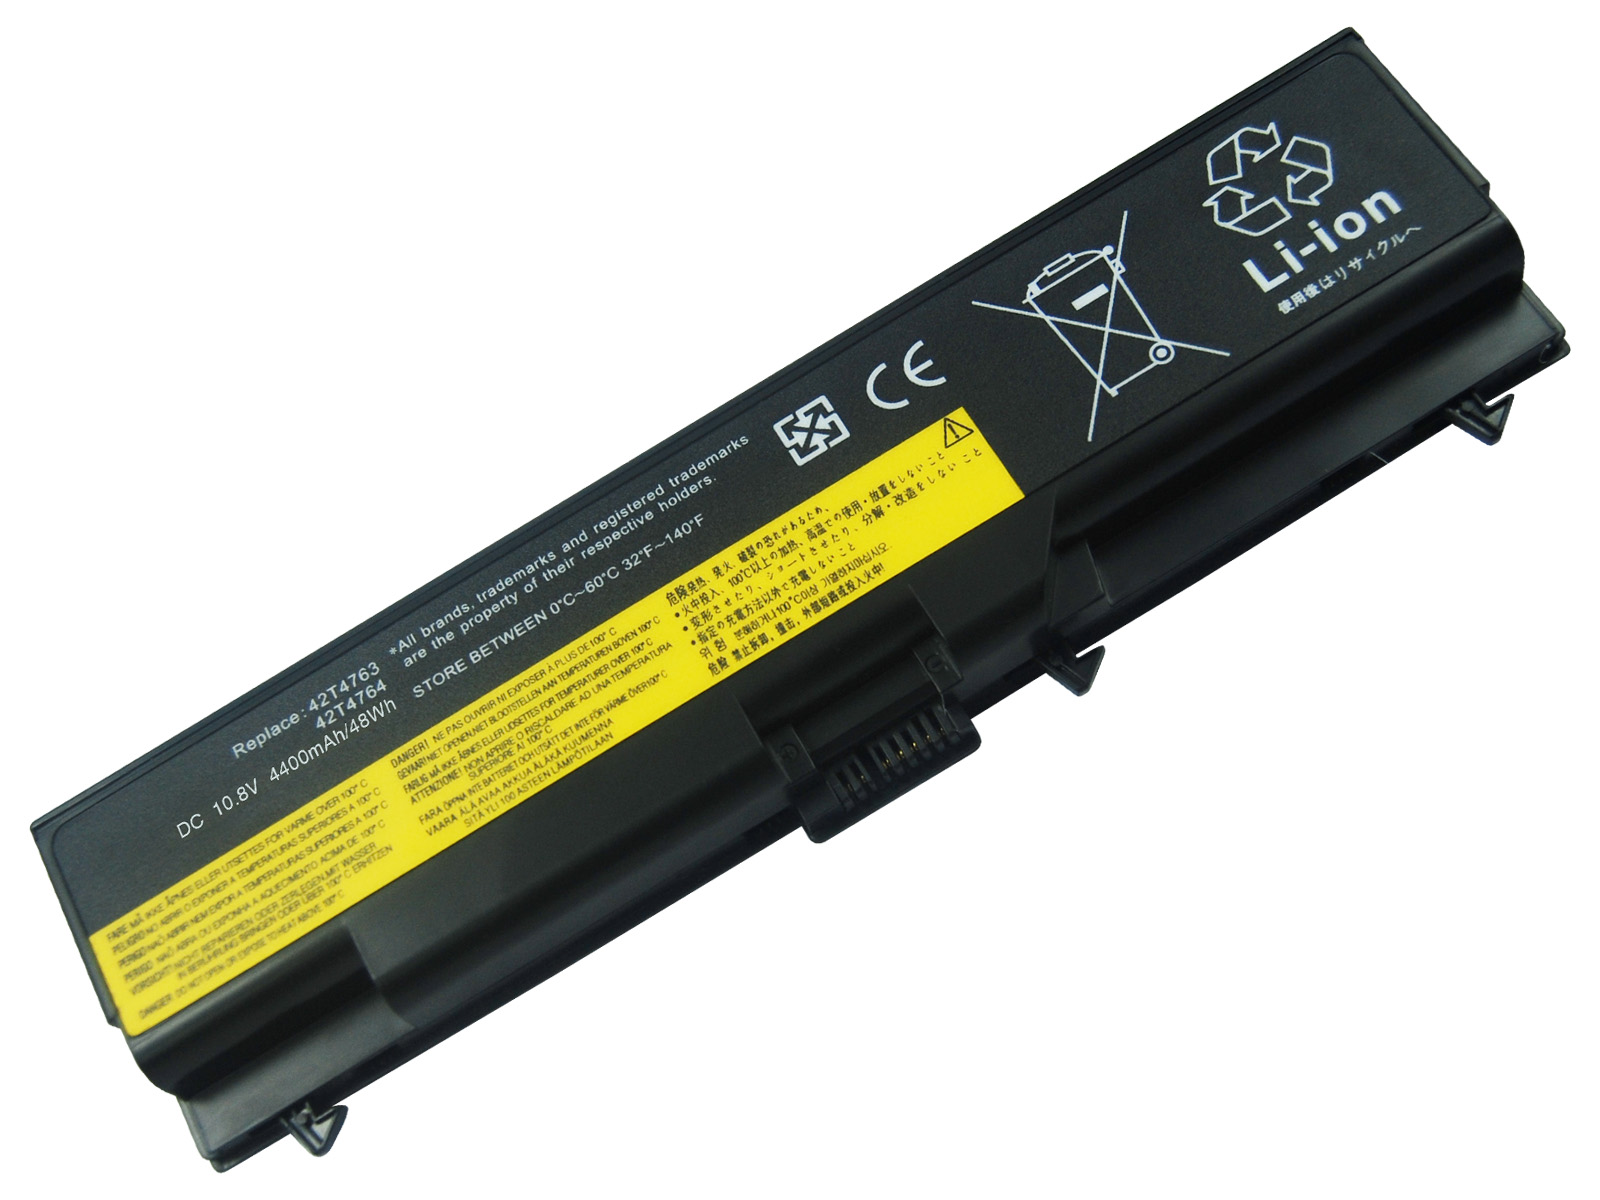 Lenovo Laptop Superb Choice 6 Cell Lenovo Thinkpad Battery 25 6 Cell Sl410 Sl510 Thinkpad Edge 14 15 Laptop Battery